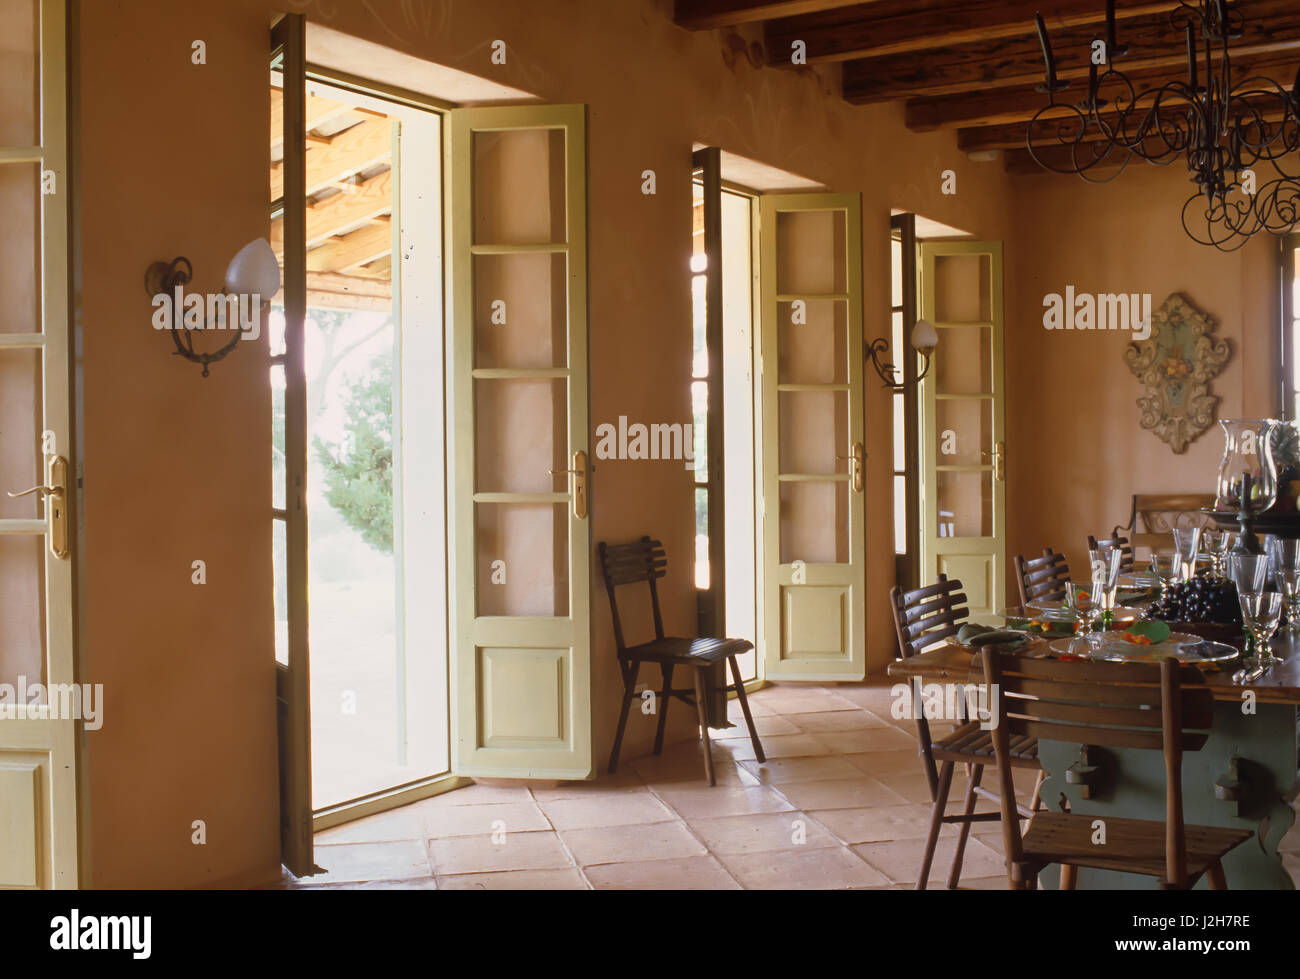 Table and chairs with open French doors - Stock Image